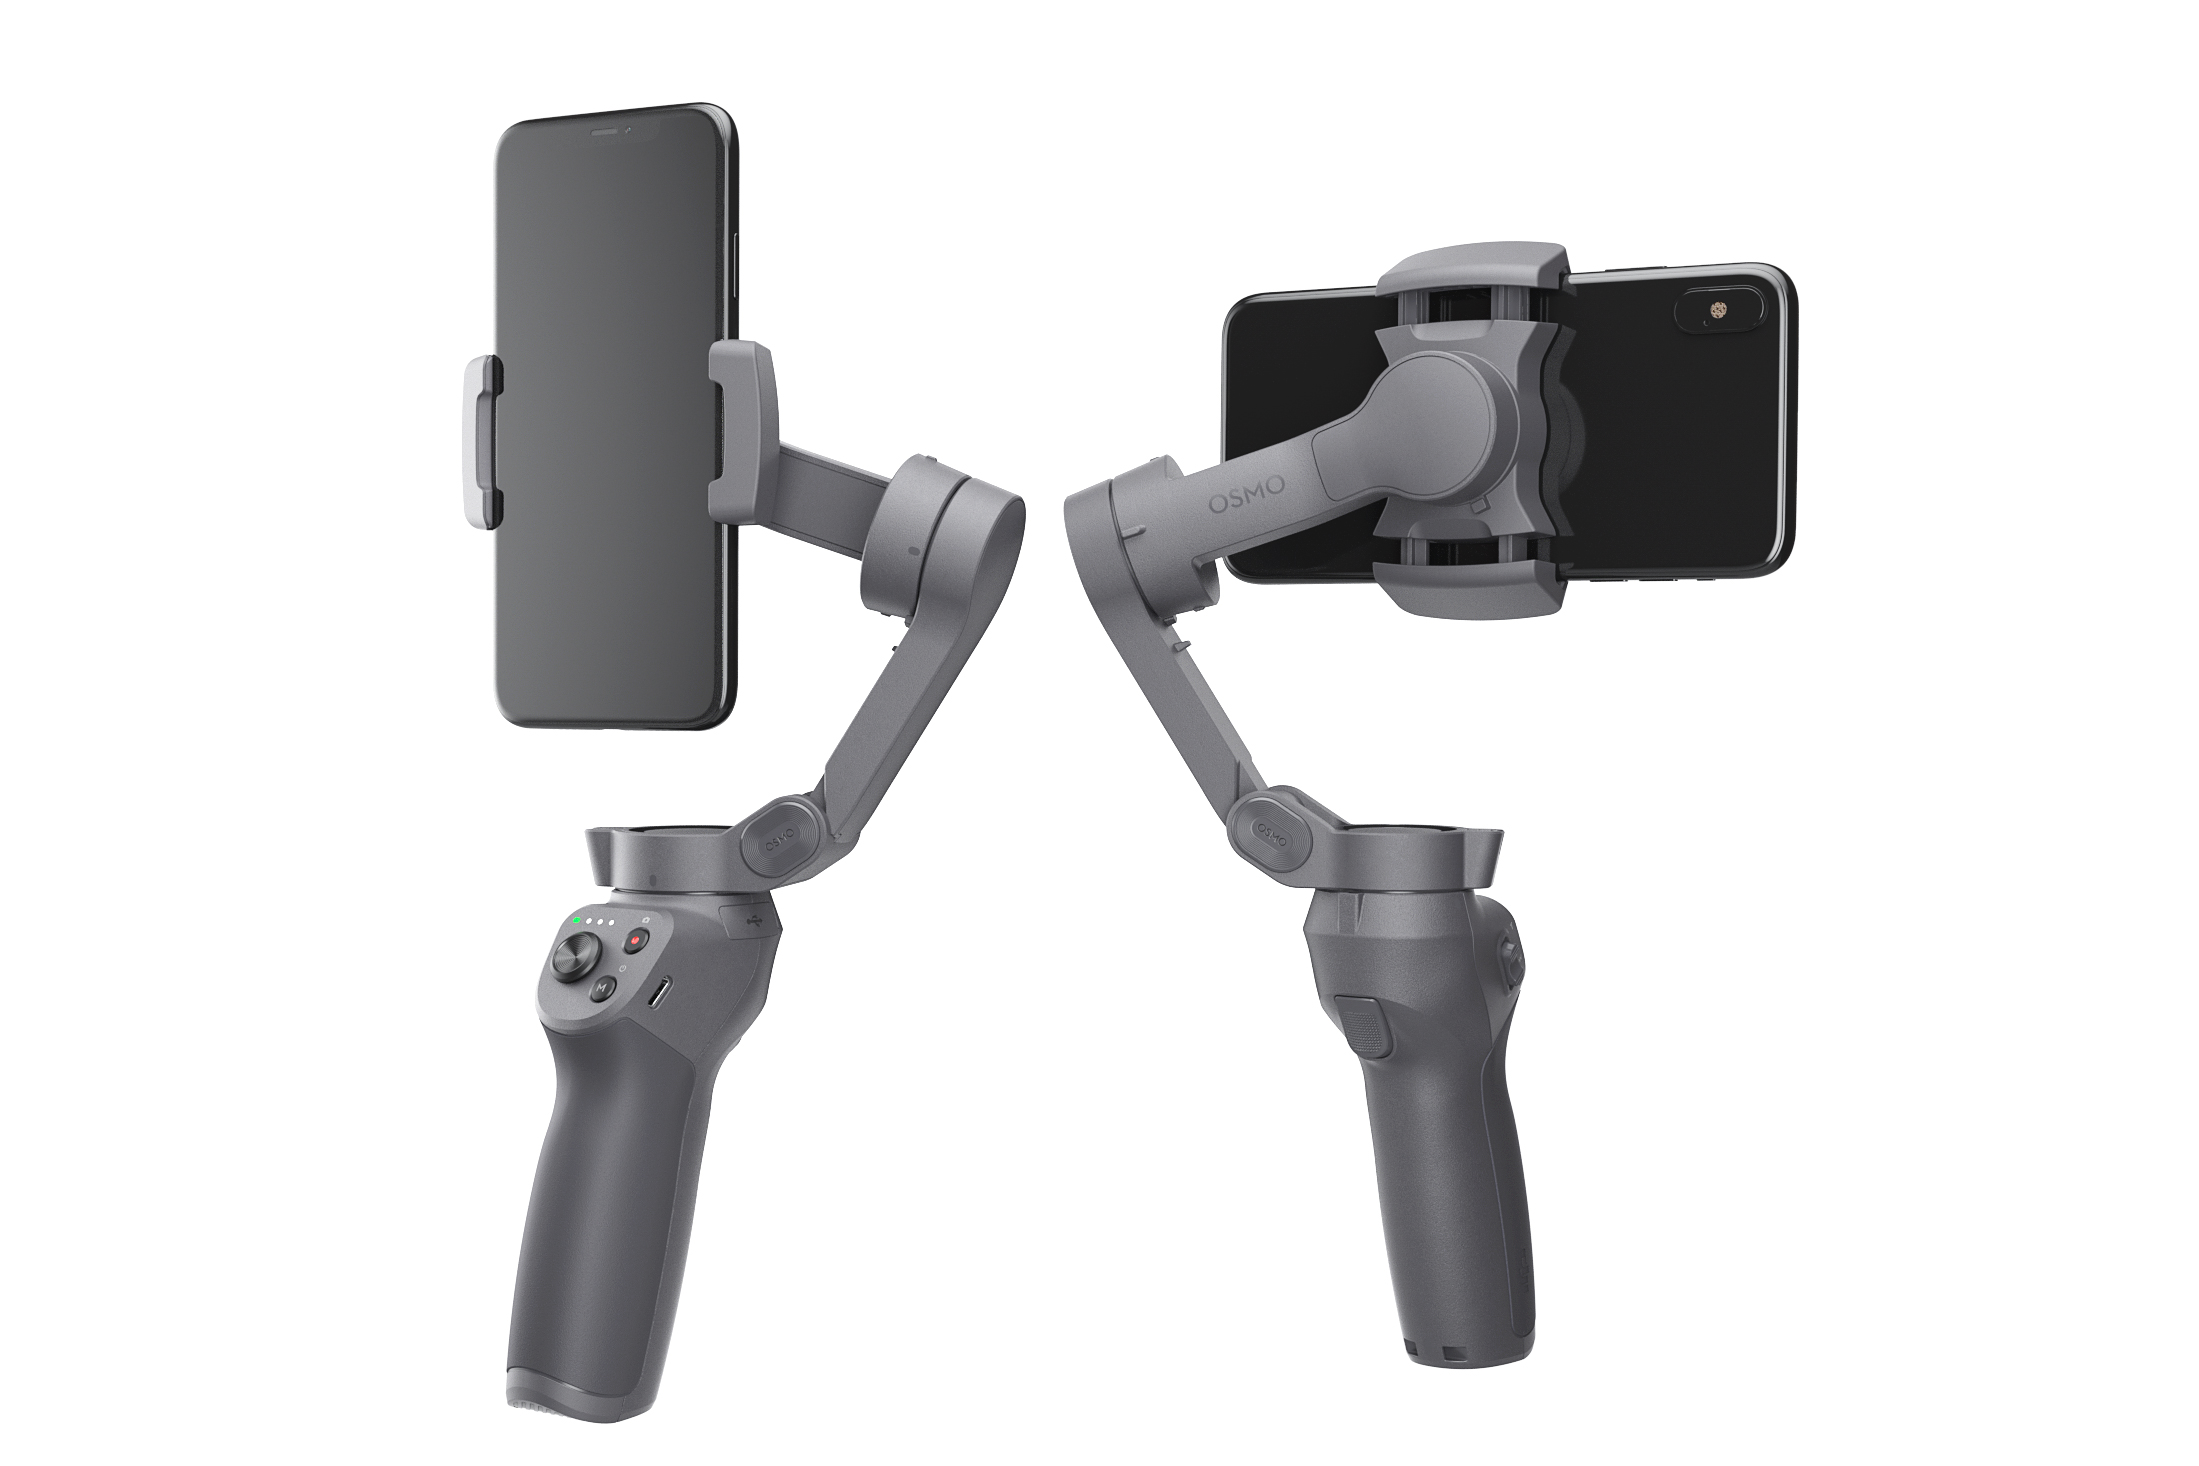 DJI Osmo Mobile 3 is a mobile gimbal that folds up like origami | Digital Camera World